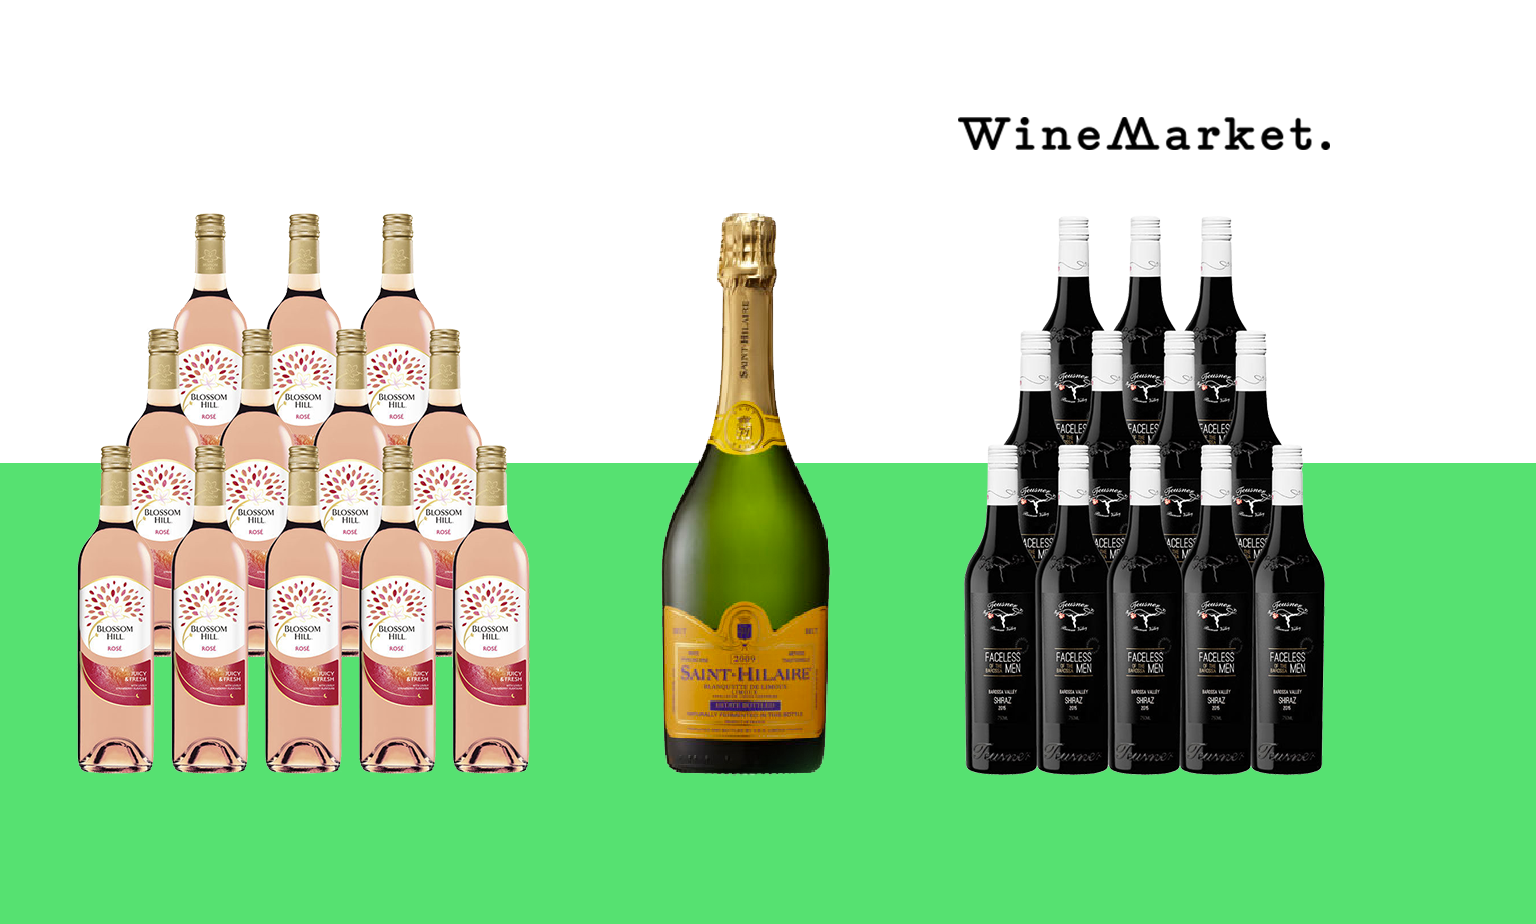 20% off at Winemarket*